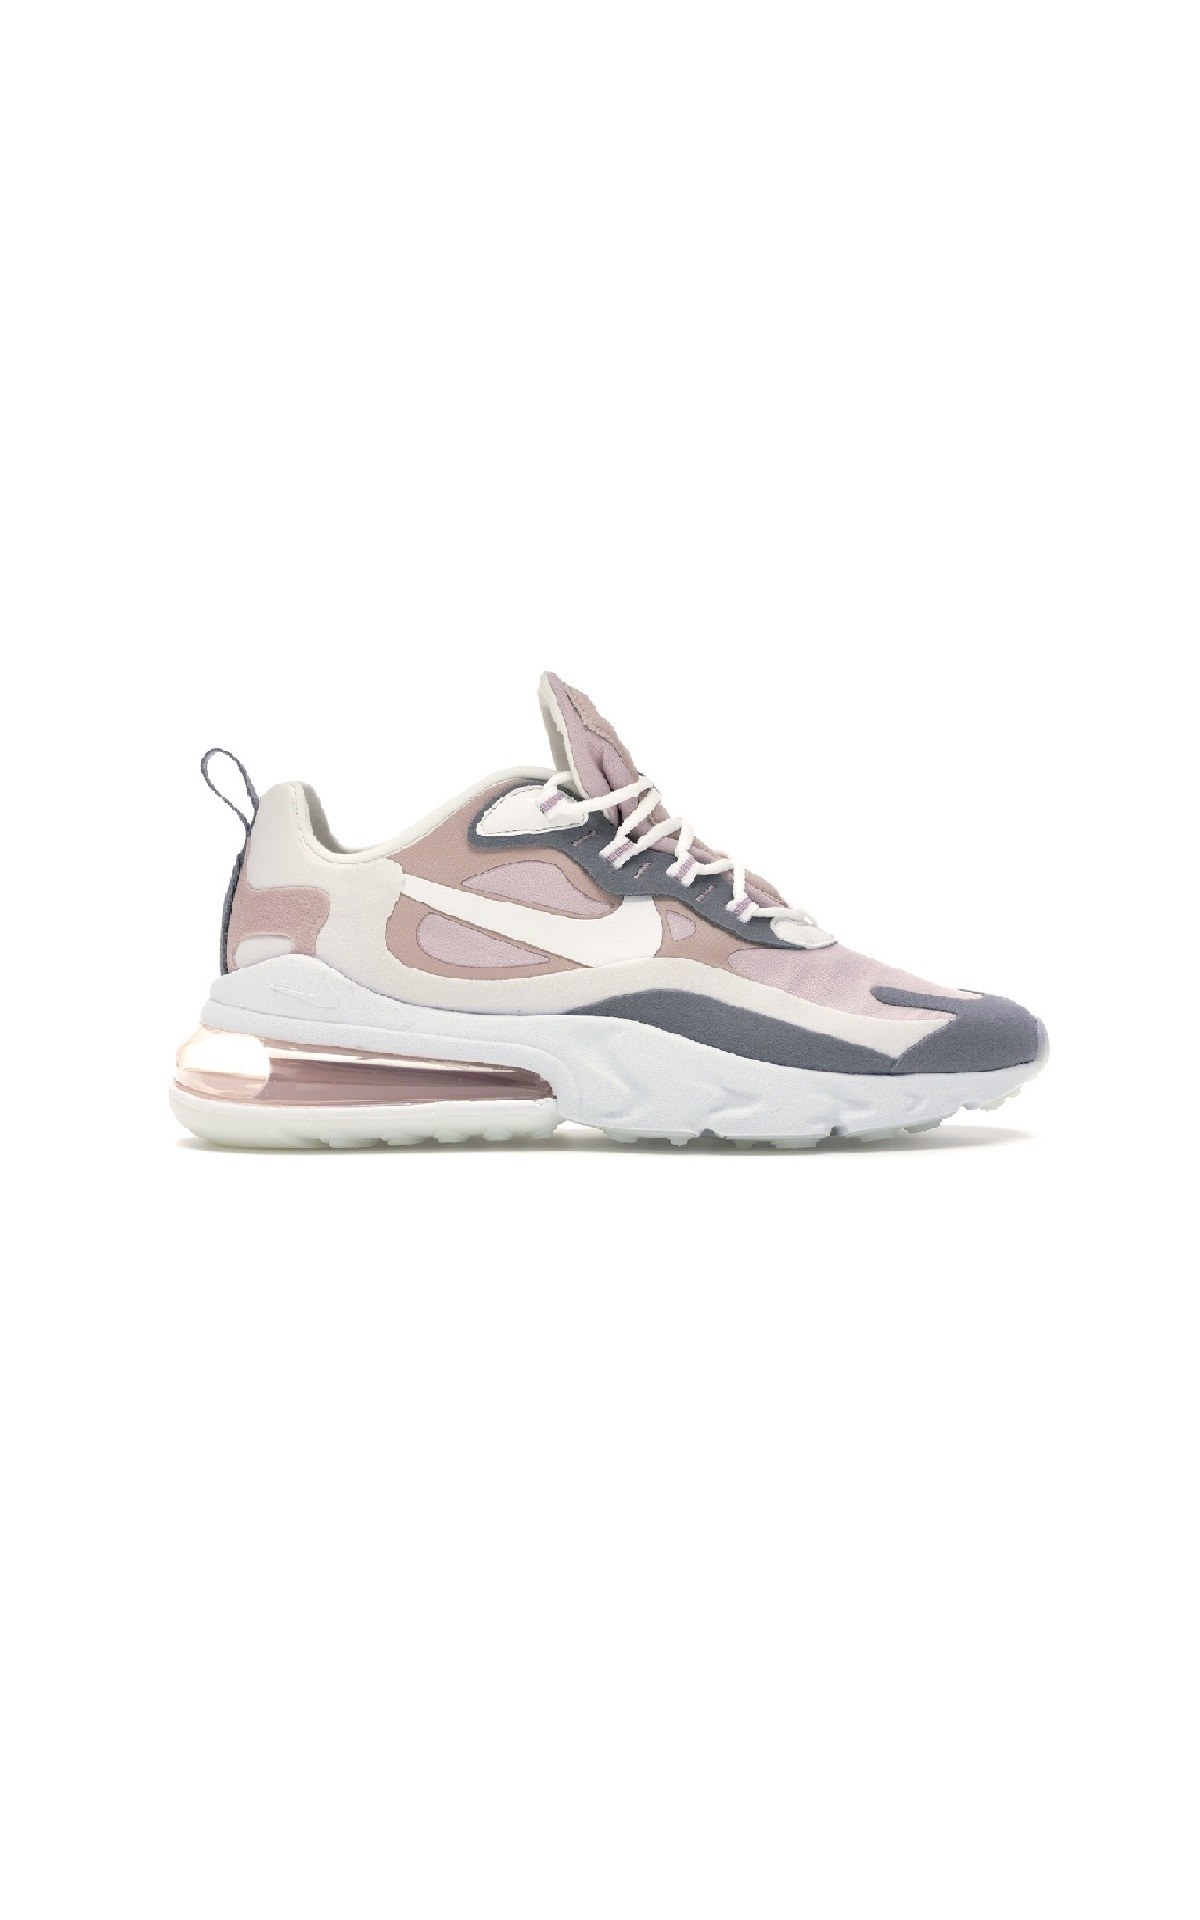 Zapatillas Air Max Nike Factory Store